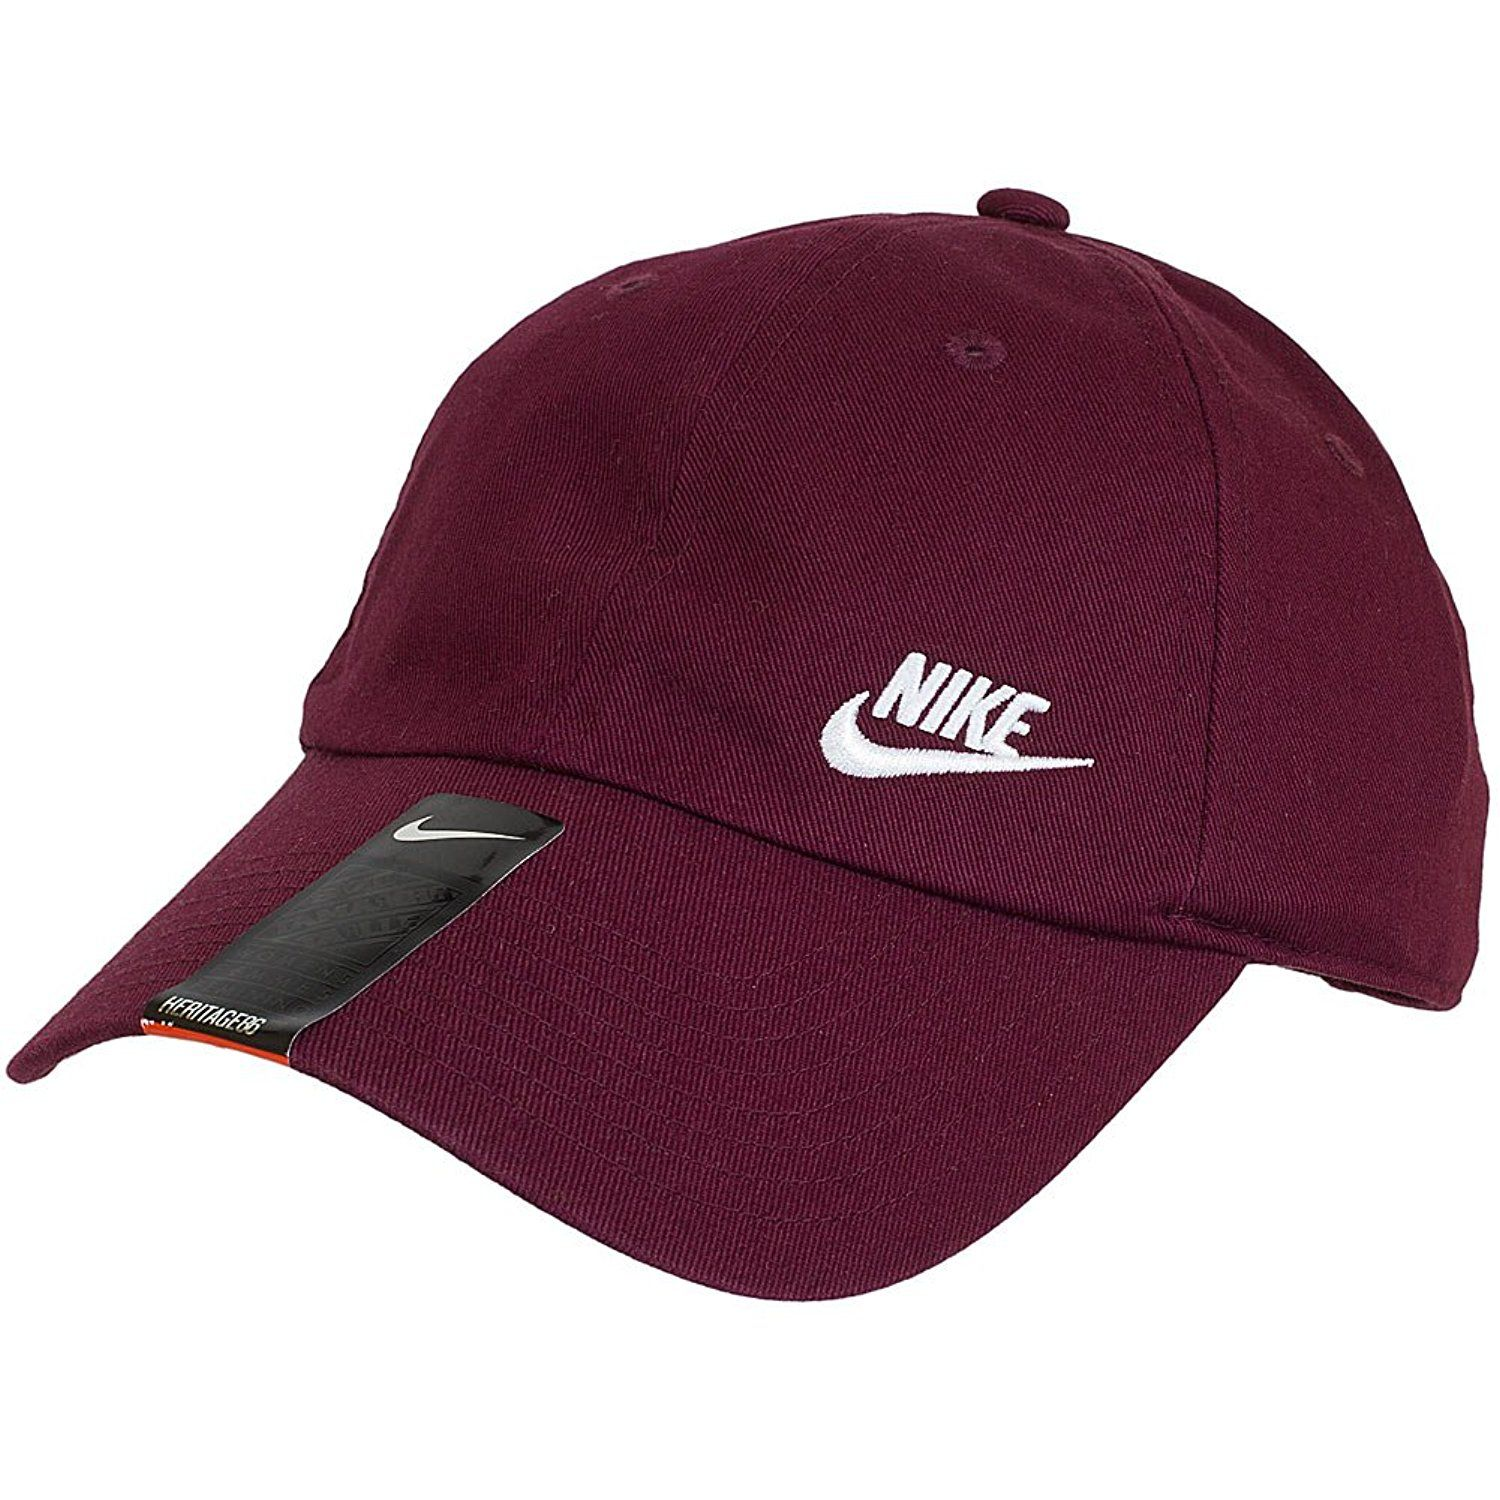 9c5a700094c Amazon.com  Nike Women s Twill H86 Women s Maroon Baseball Cap Burgundy   Sports   Outdoors